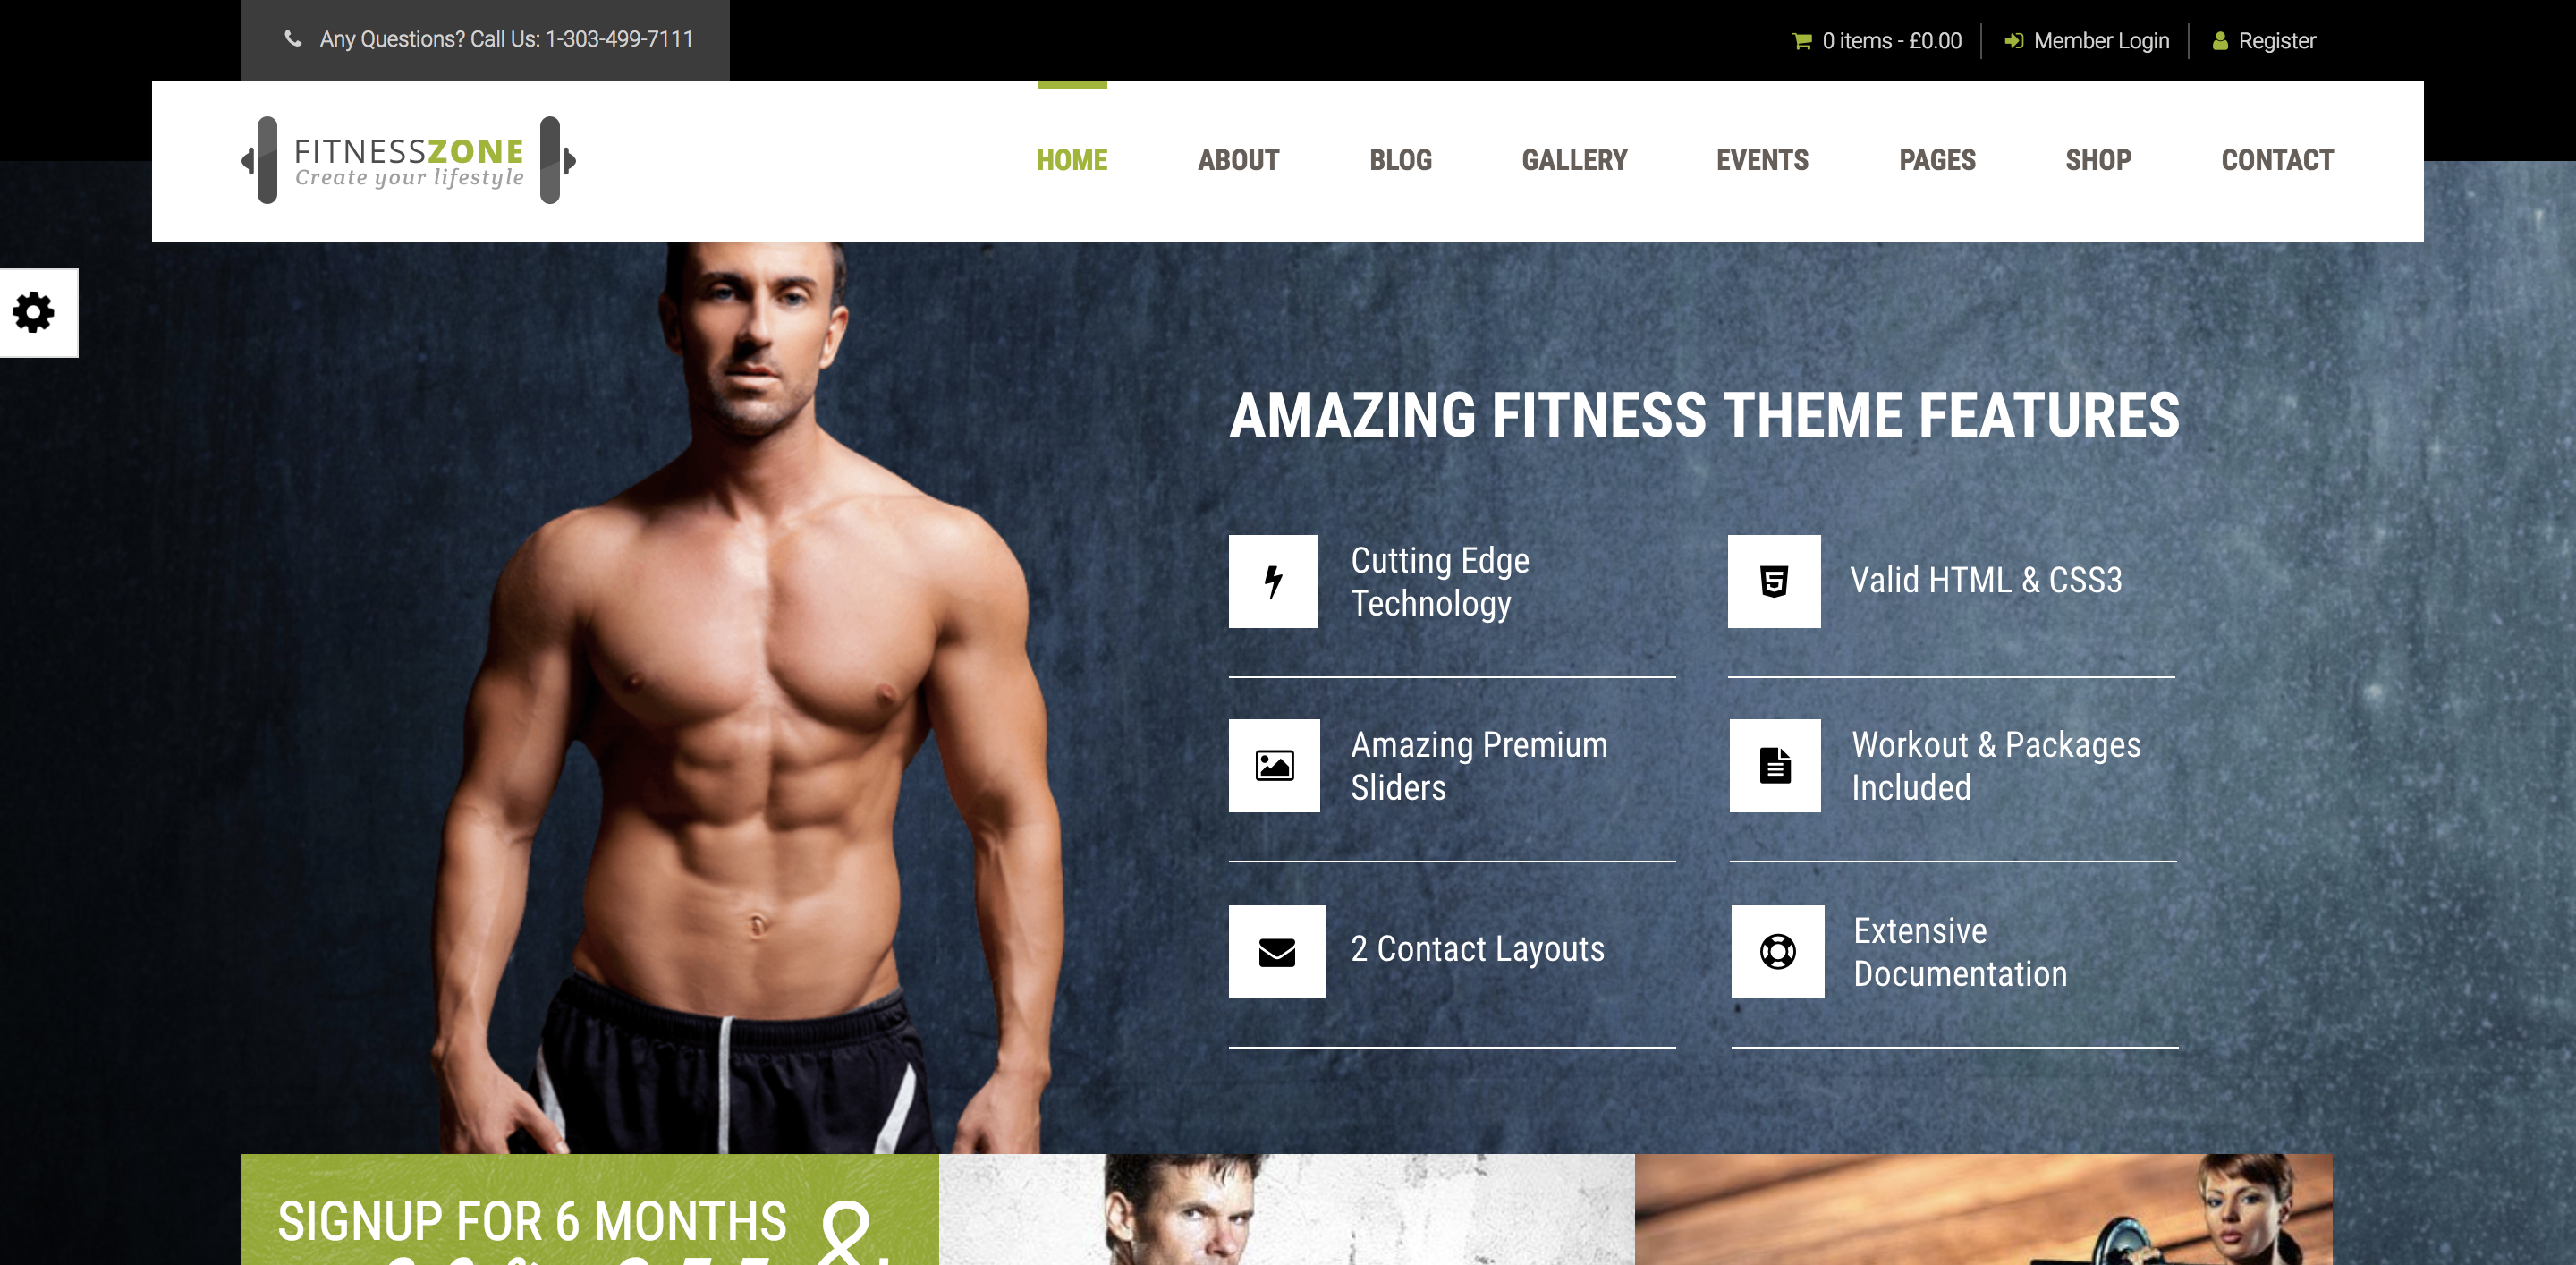 Fitness Zone | Gym & Fitness Theme, perfect fit for fitness centers and Gyms.png